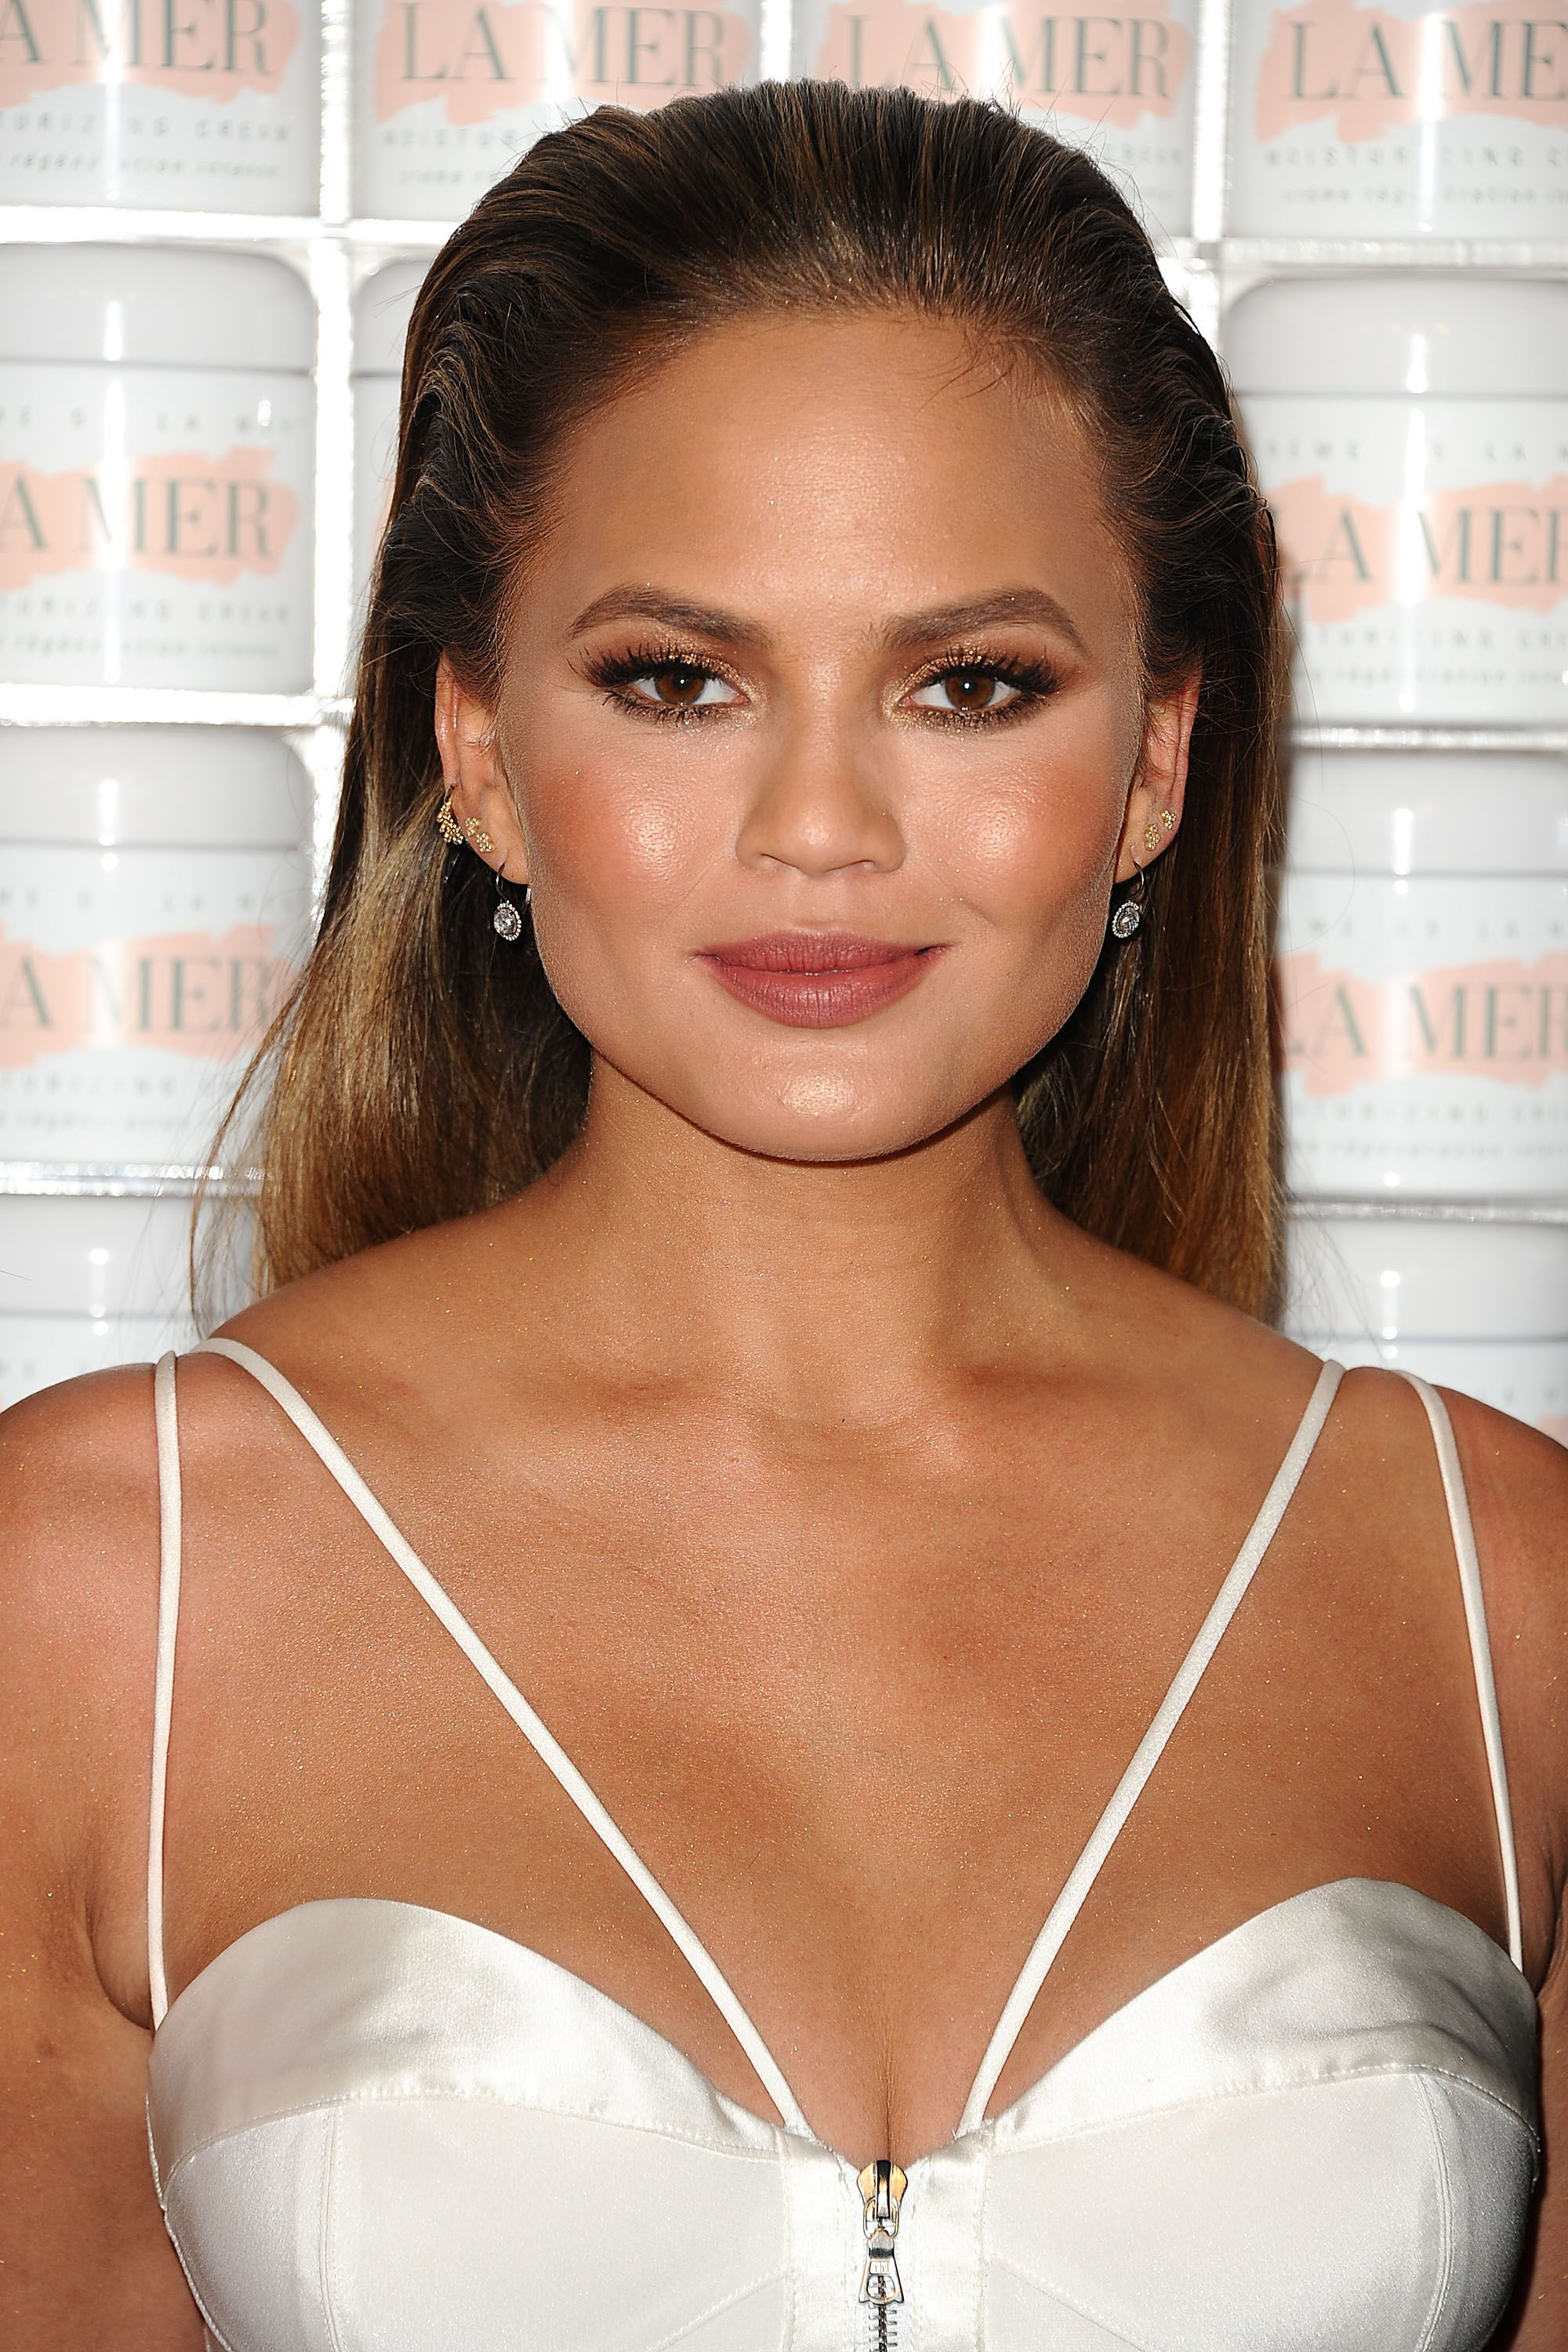 Hairstyles for Round Faces Best Haircuts for Round Face Shape